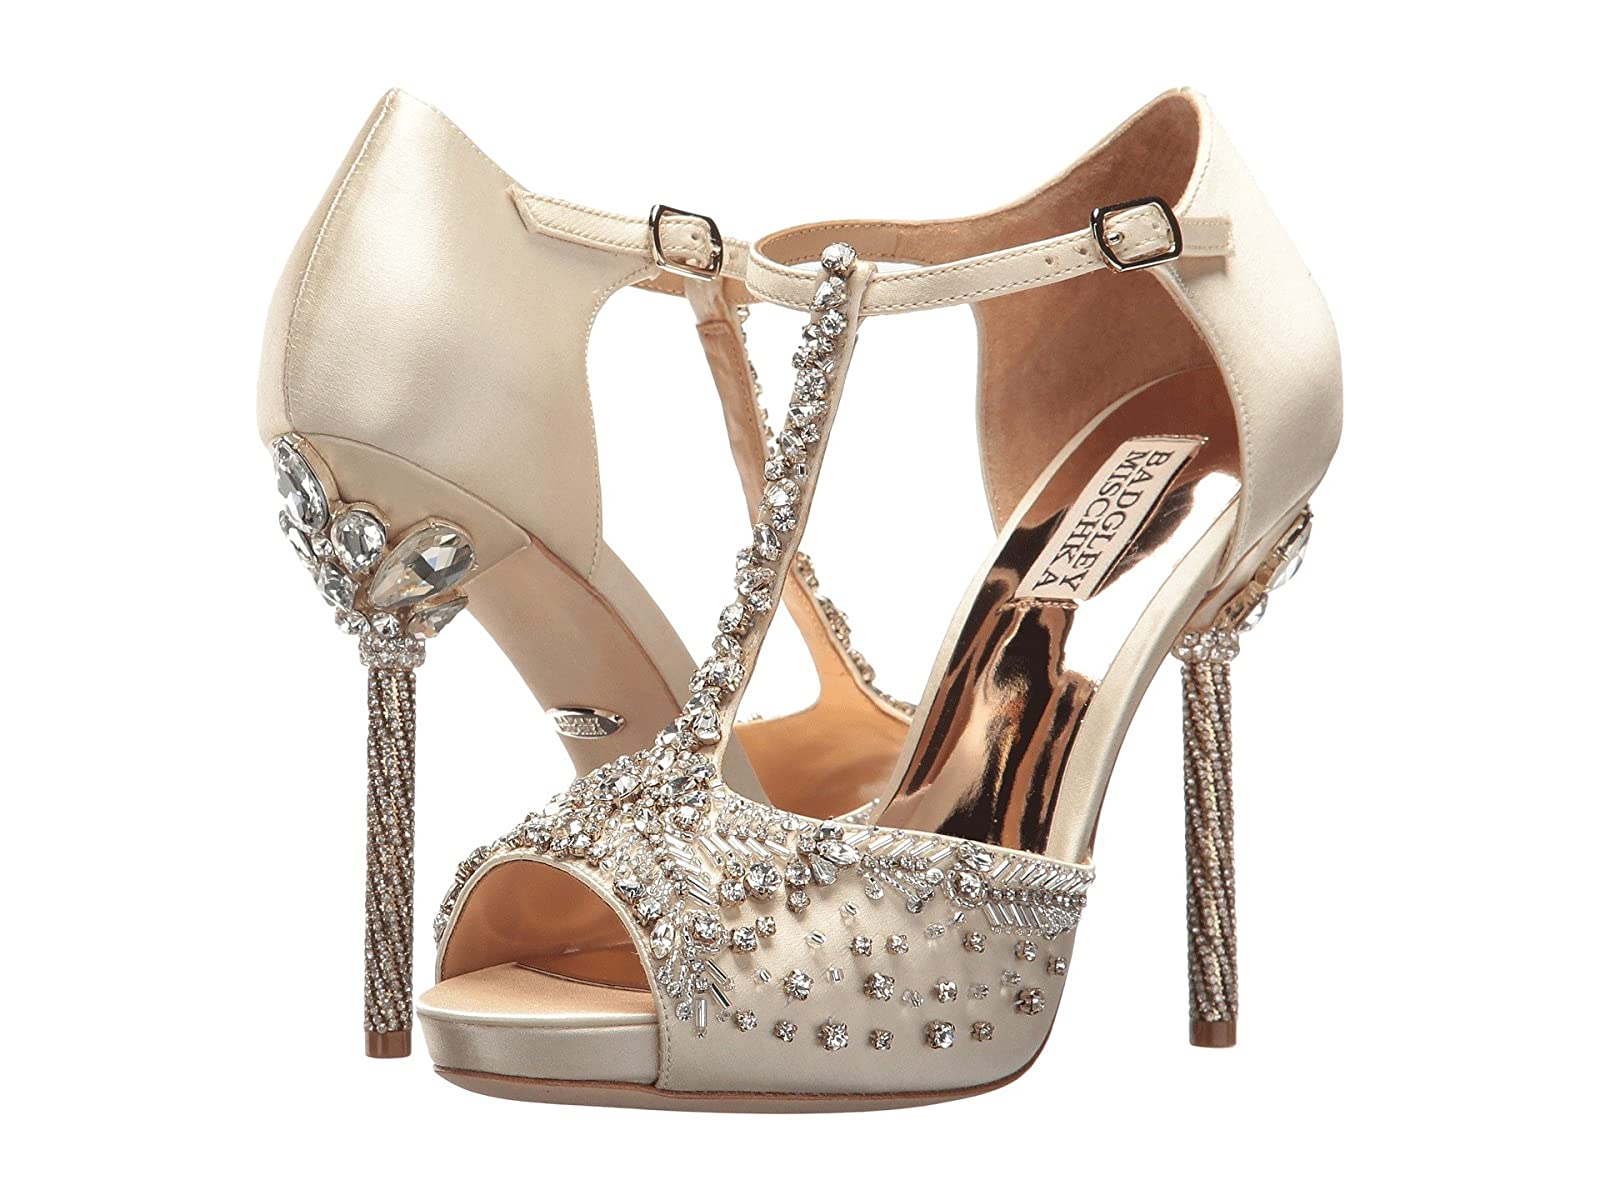 Badgley Mischka StaceyCheap and distinctive eye-catching shoes